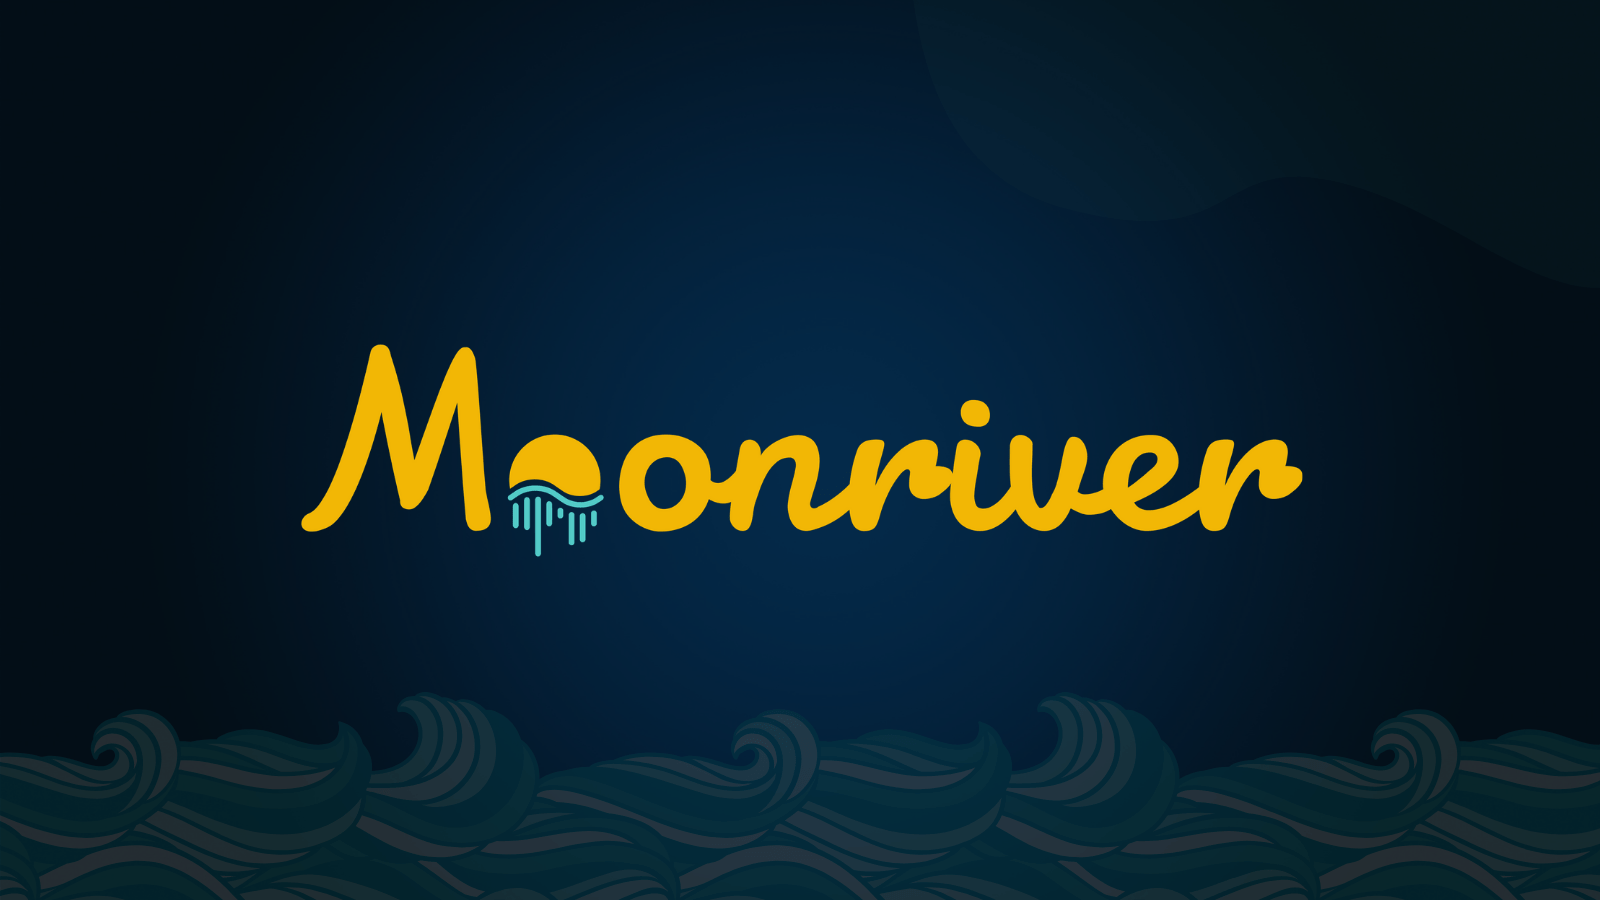 About Moonriver: The Kusama Implementation of Moonbeam